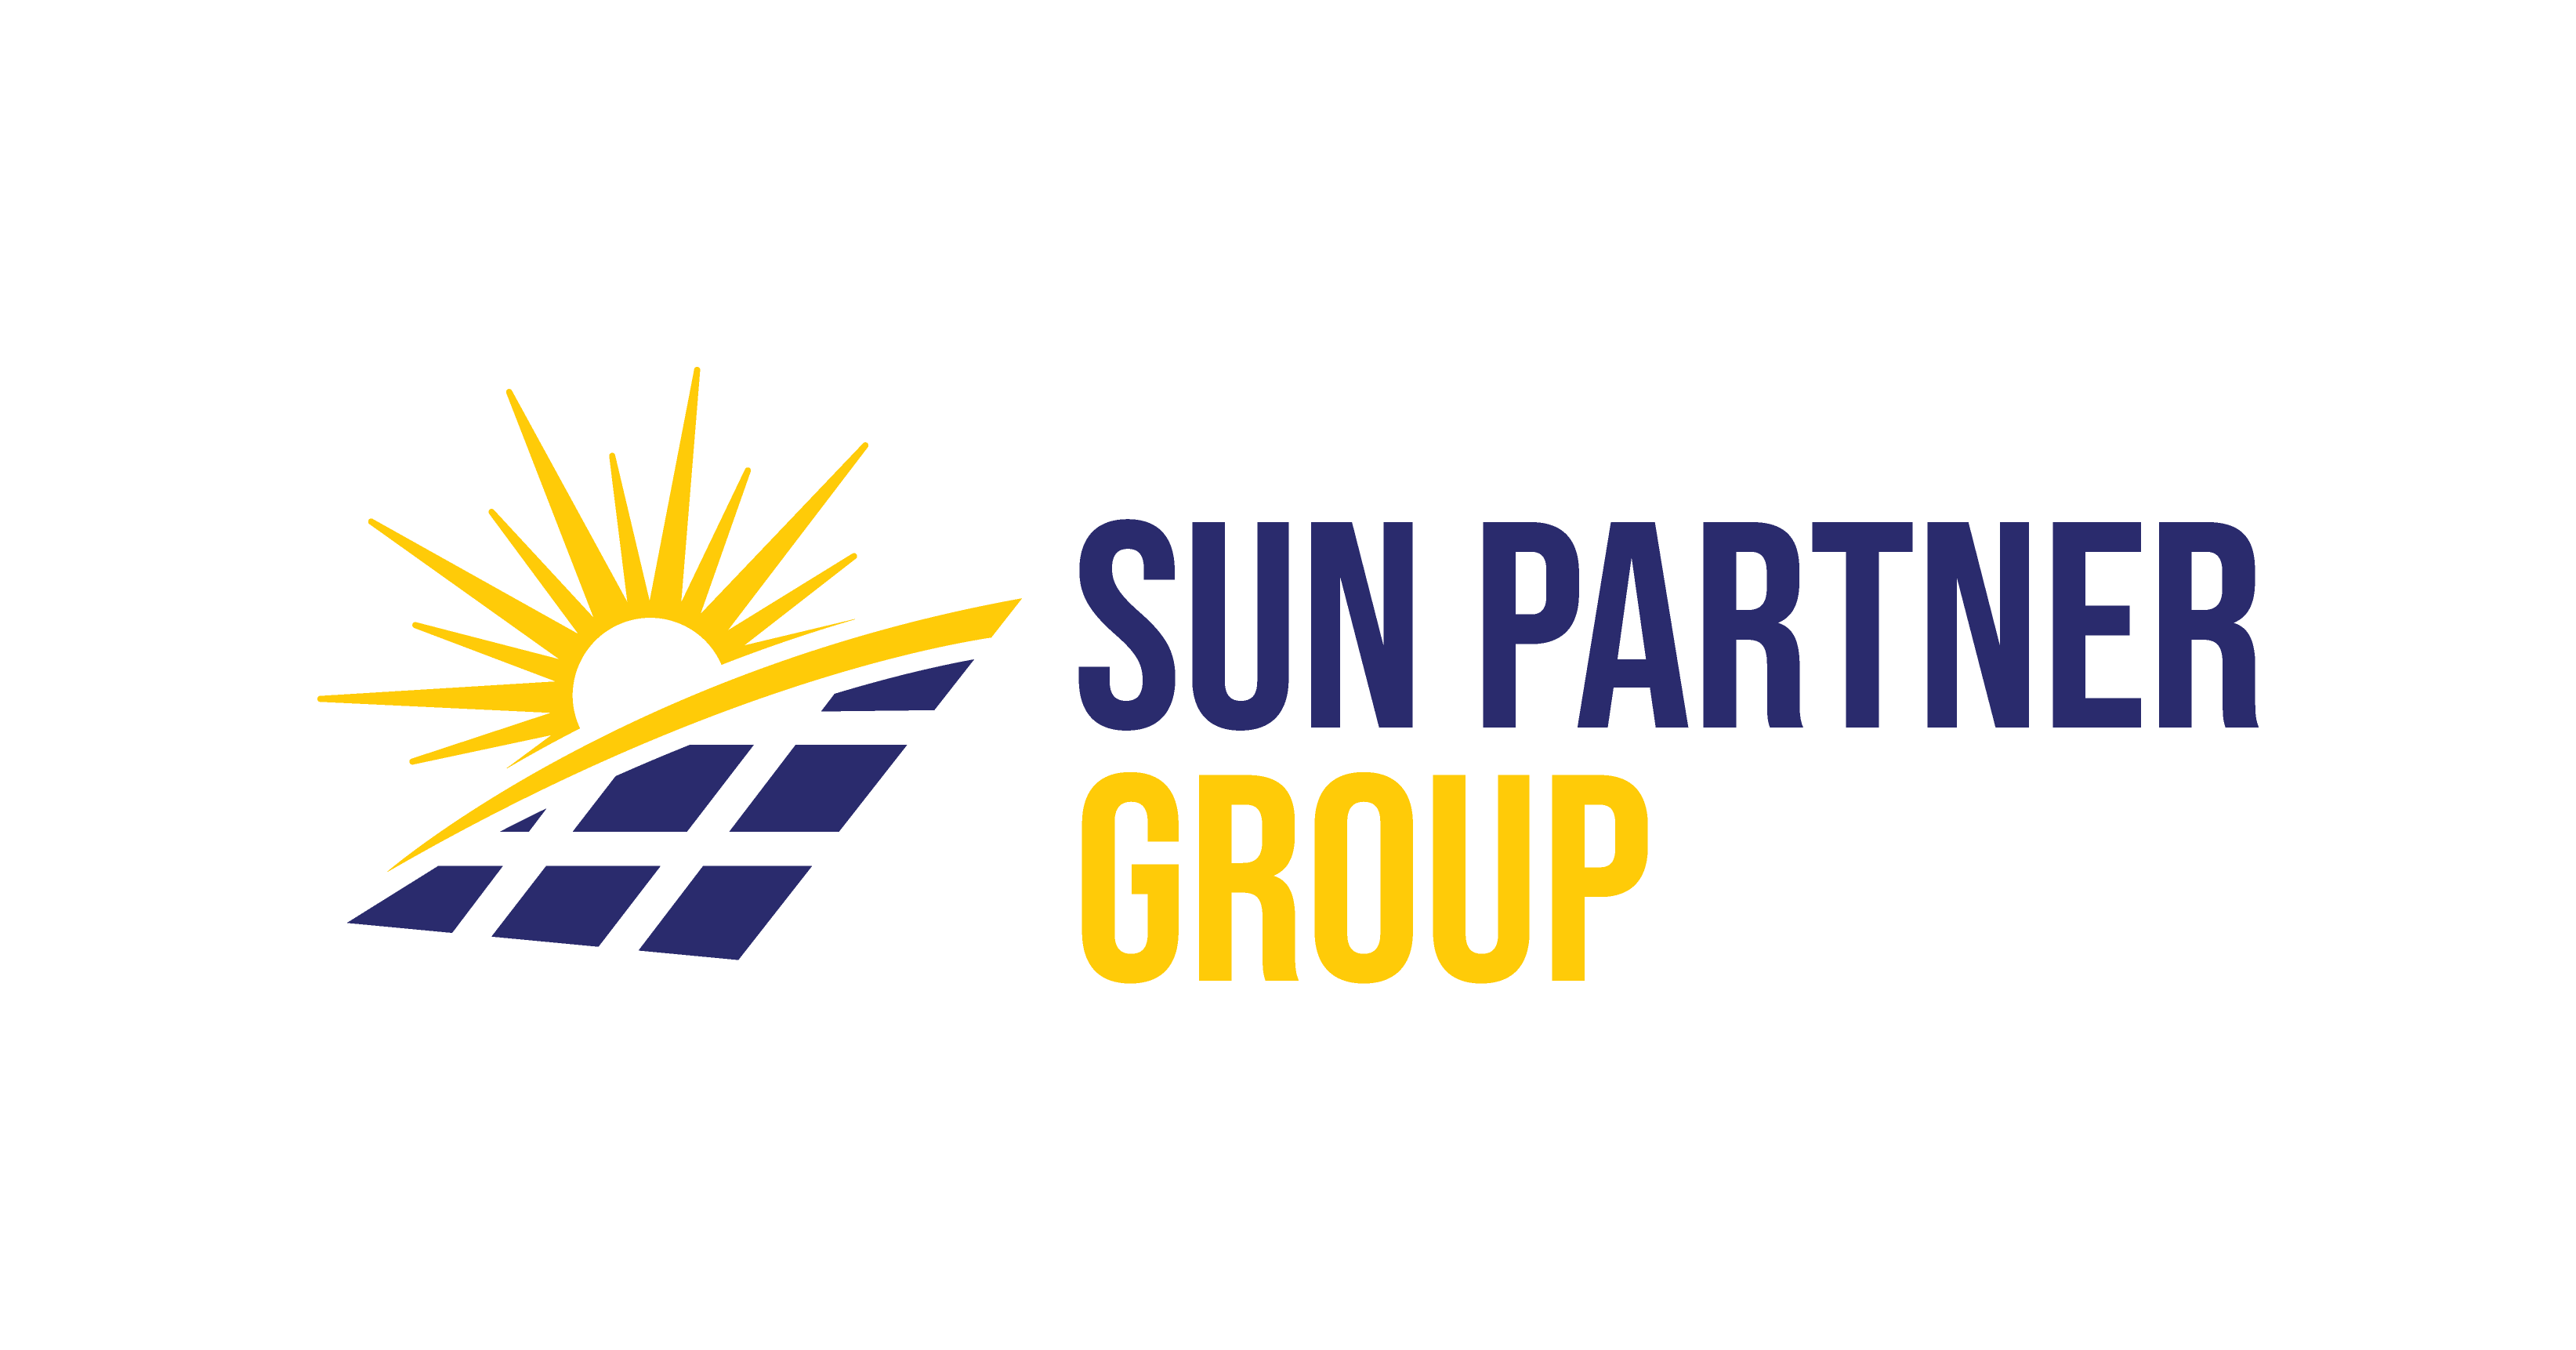 Sun Partner Group